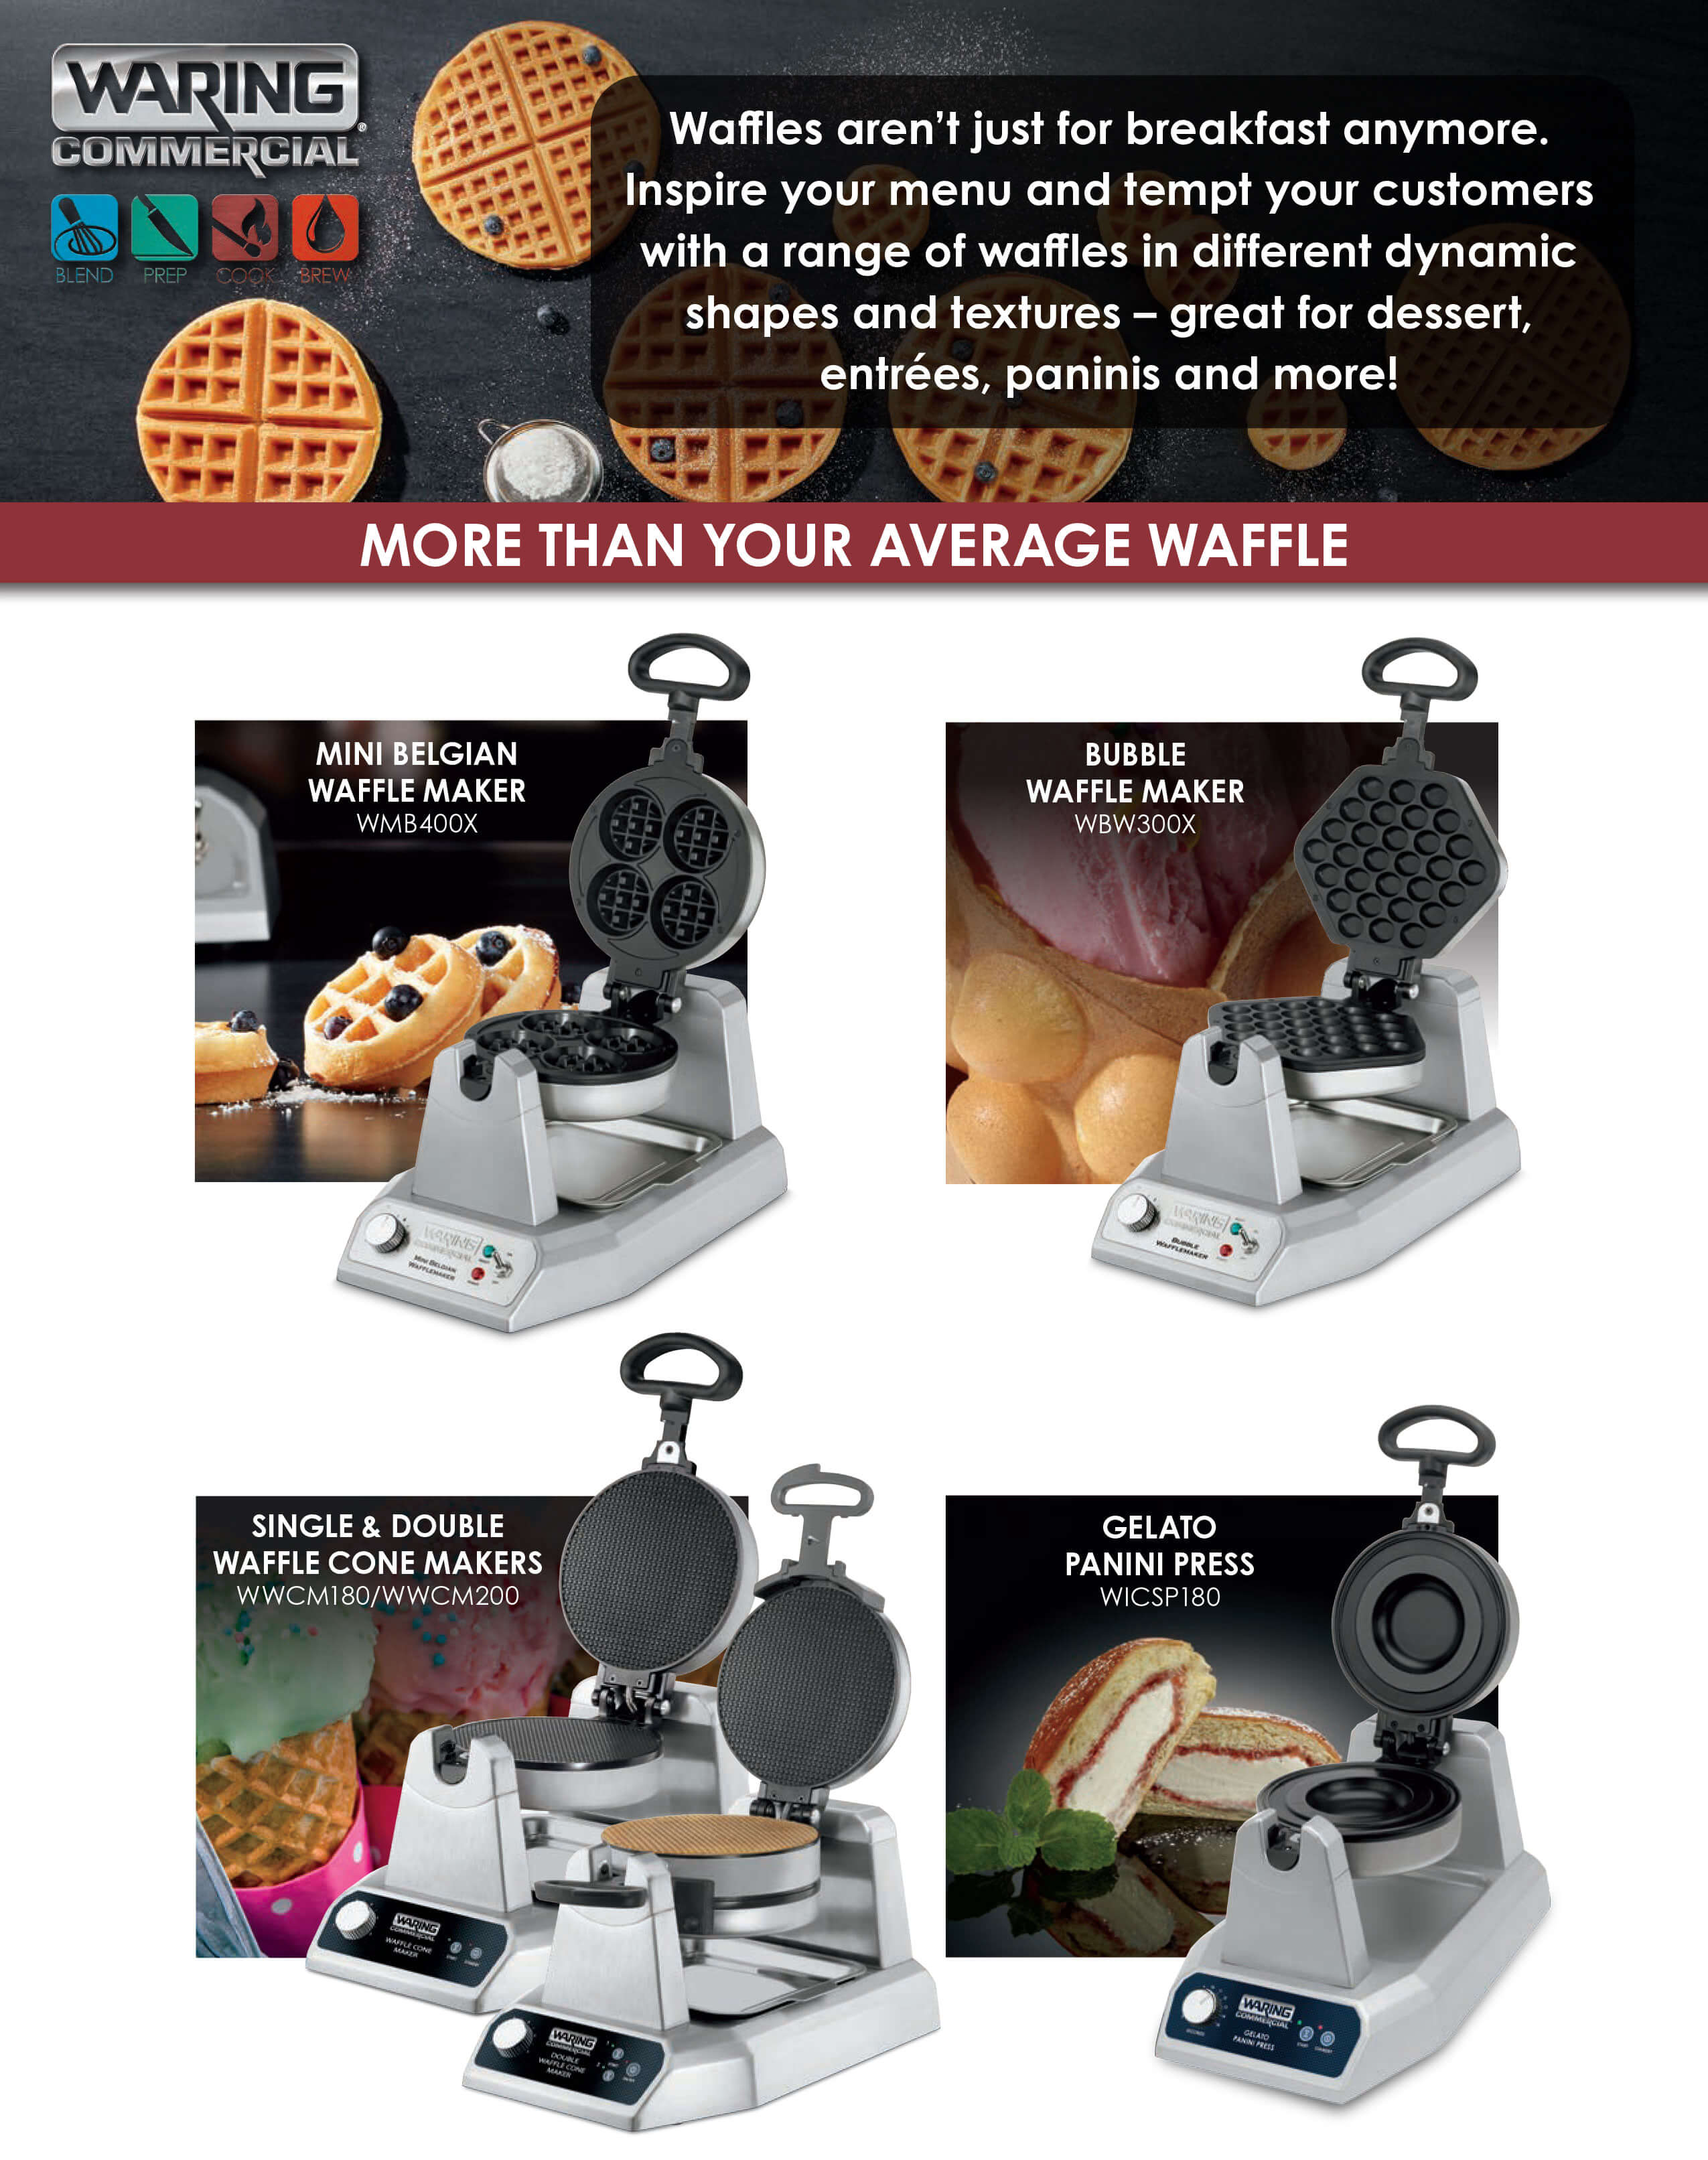 Waring - More Than Your Average Waffle